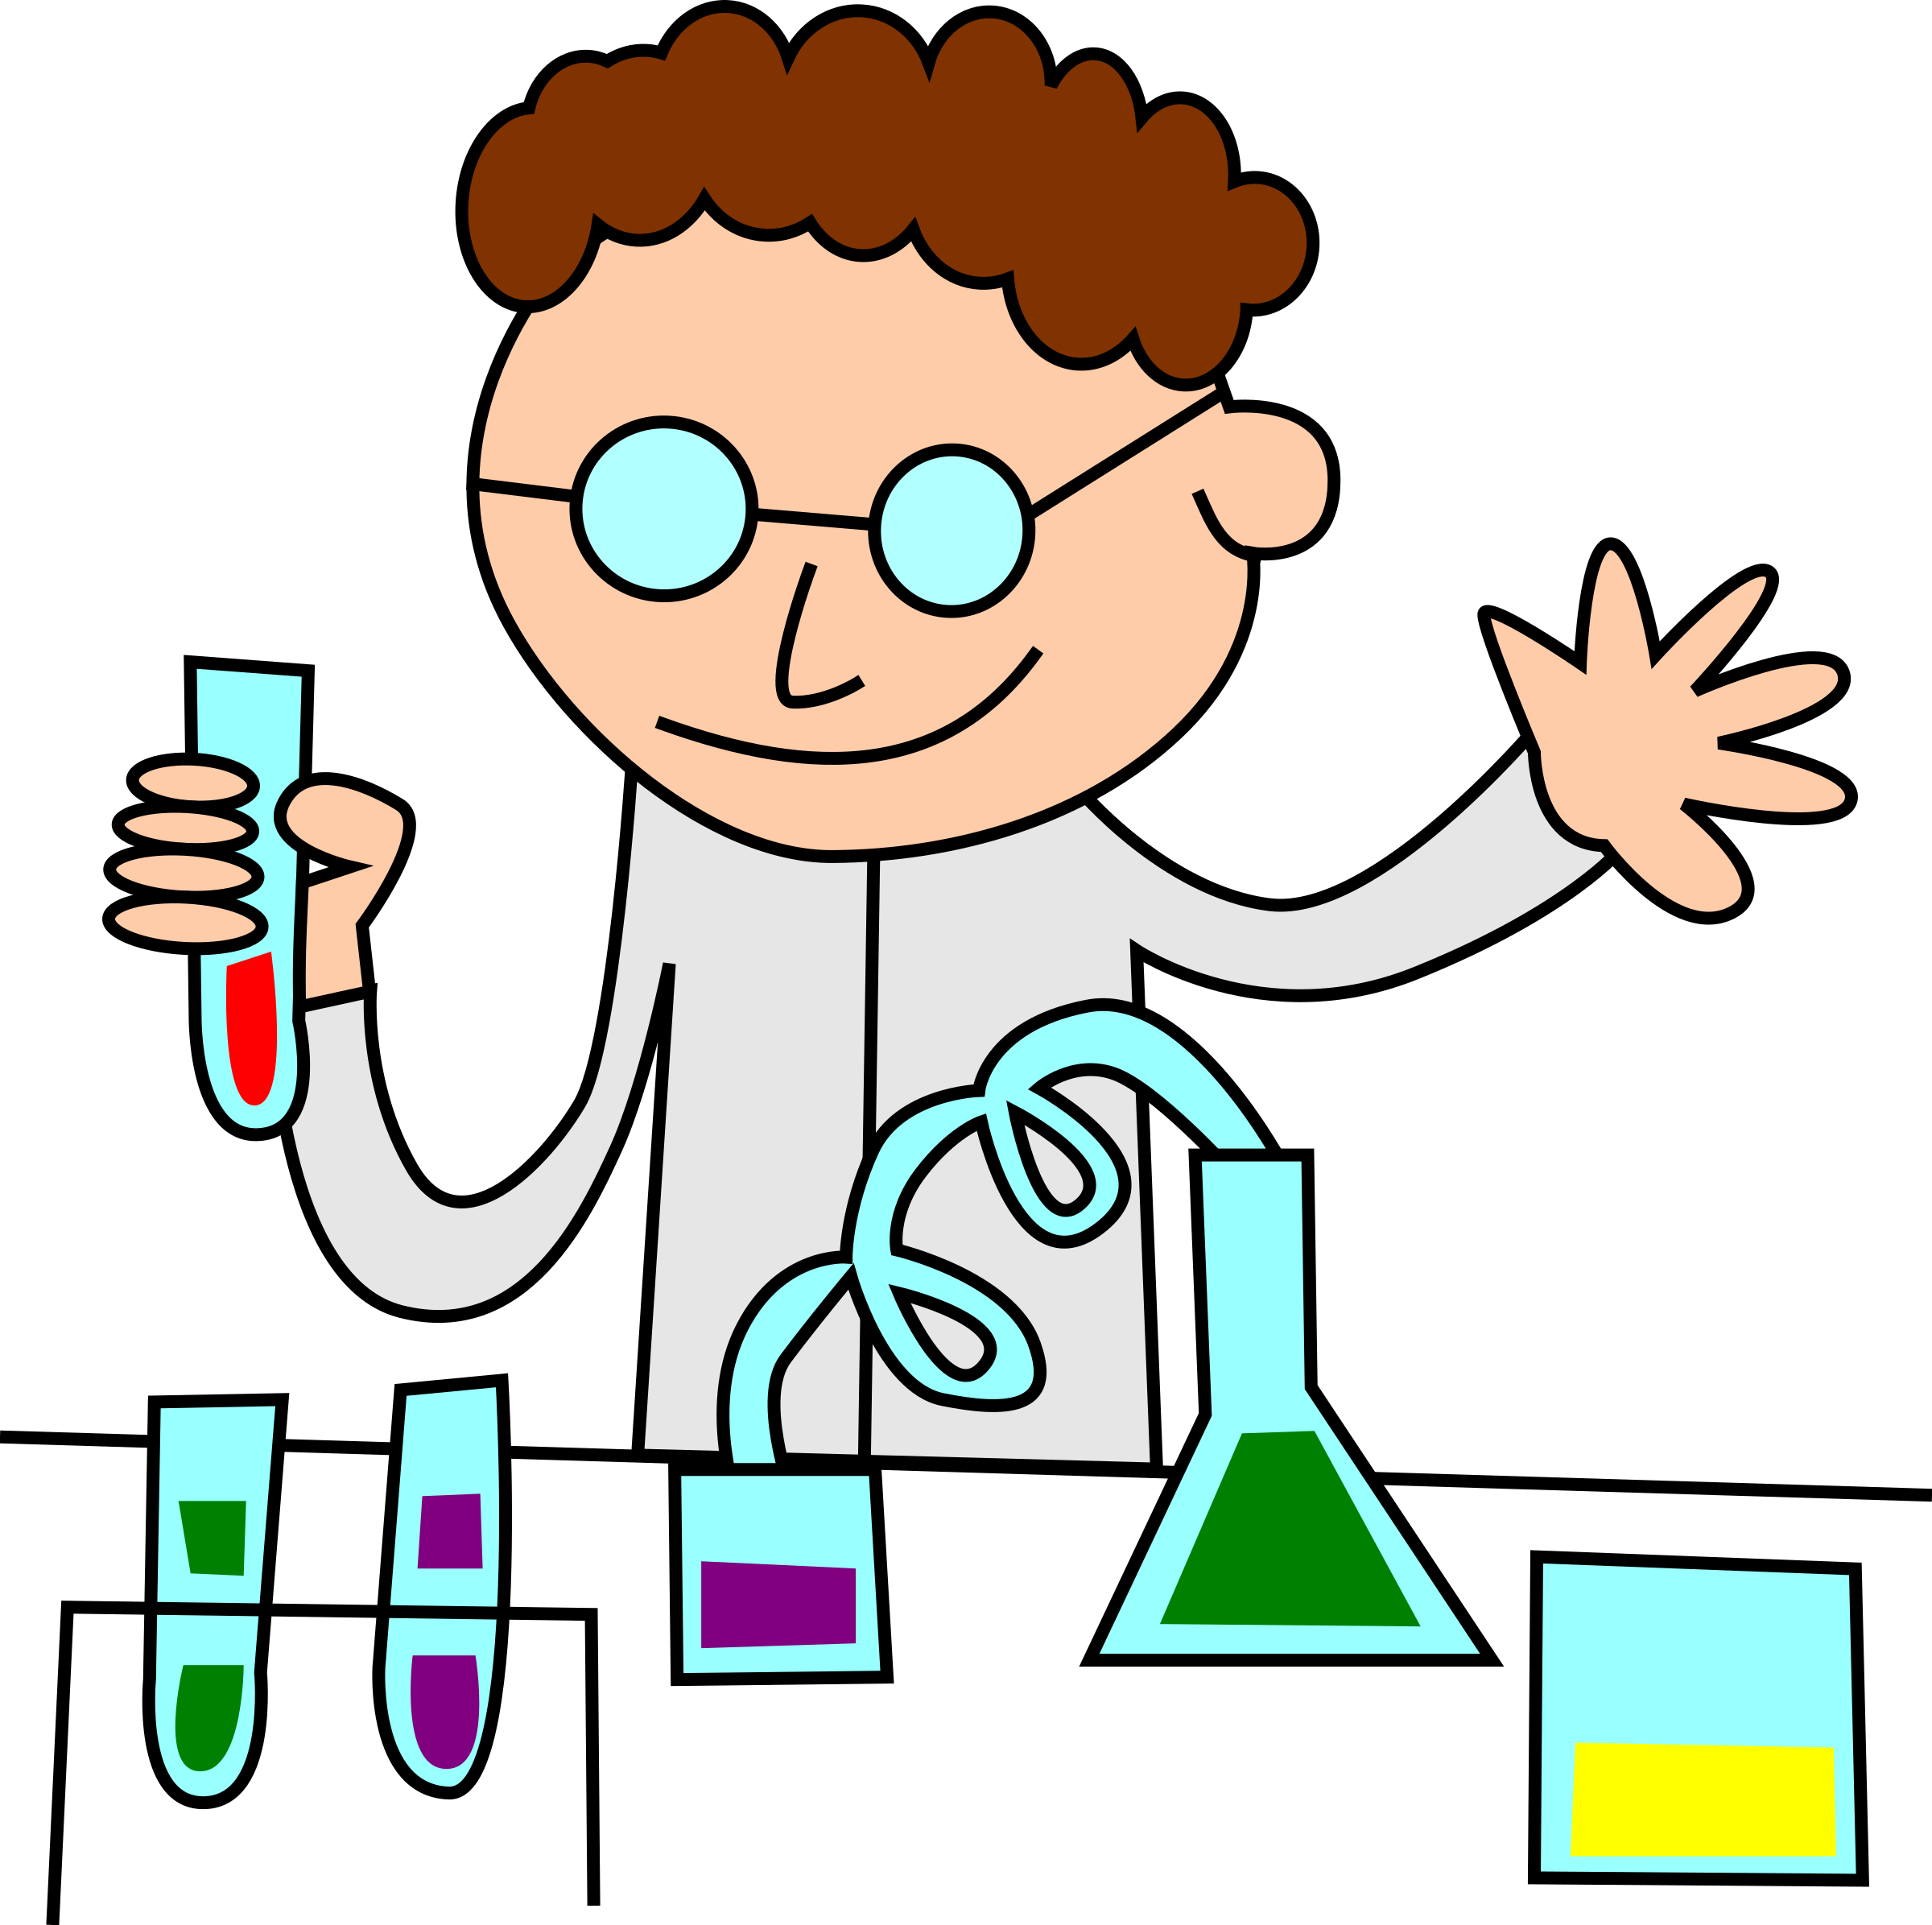 Chemist in lab vector clipart image.